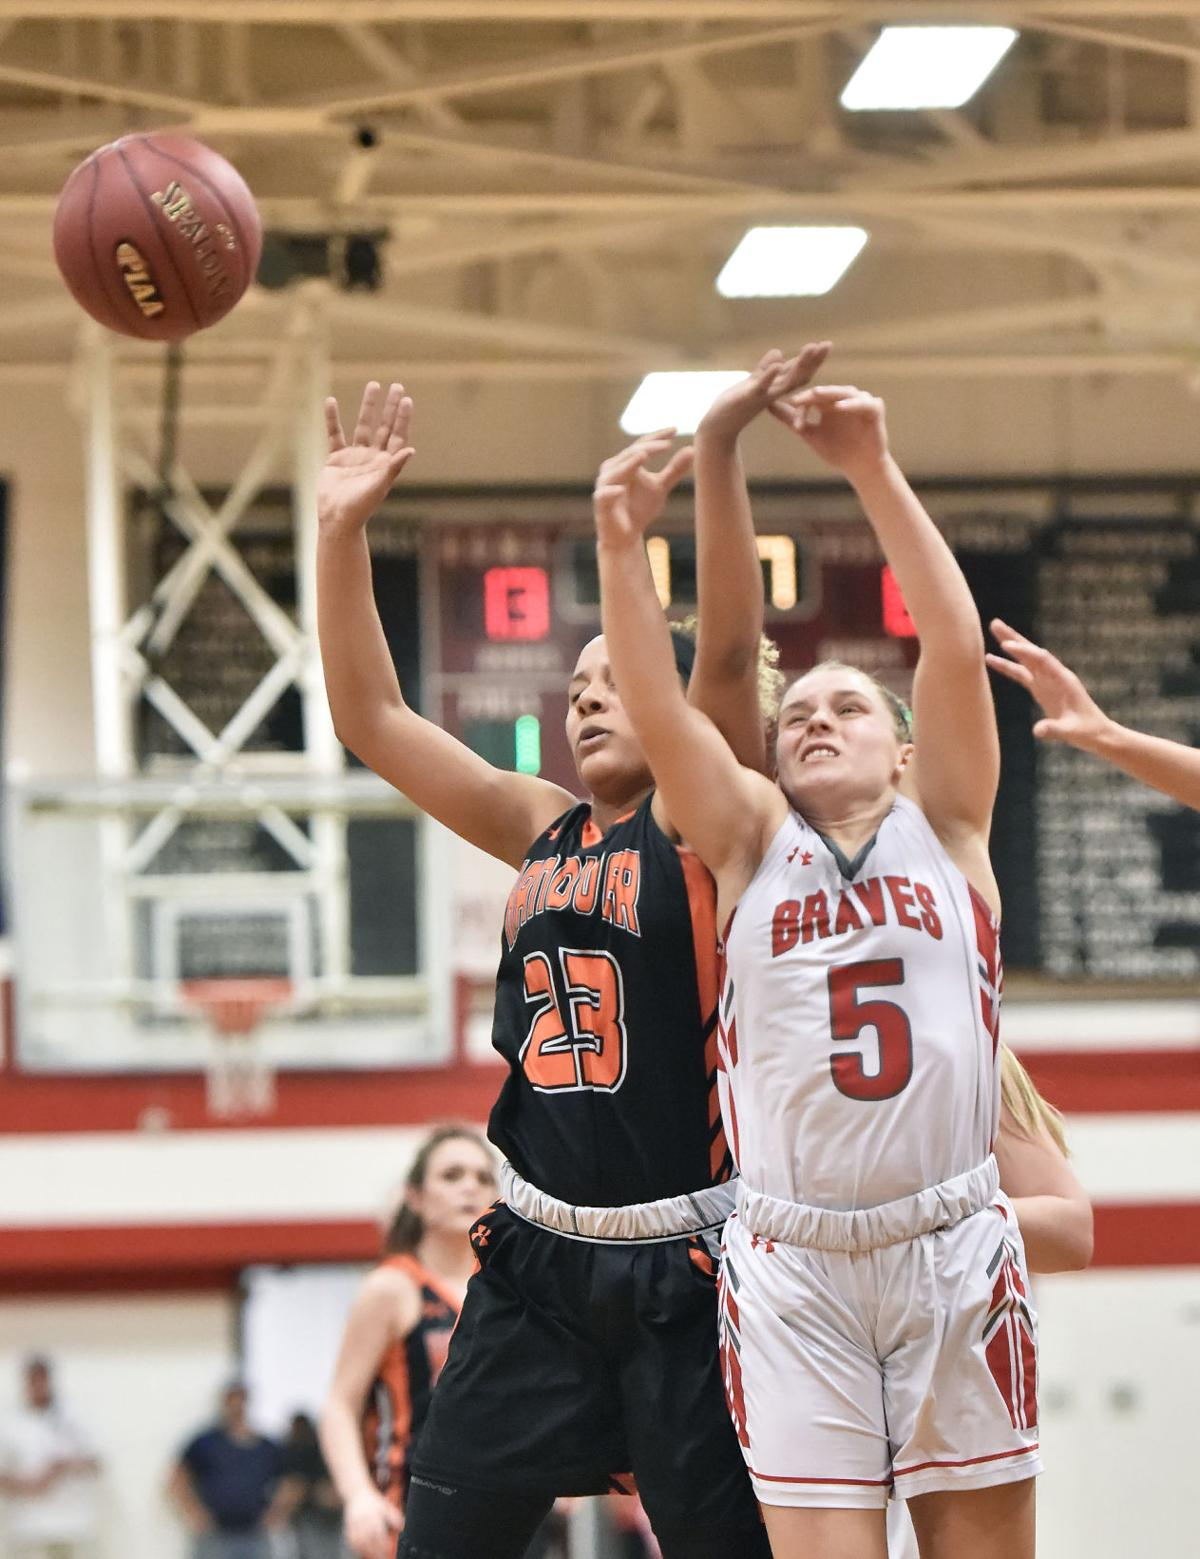 pequea girls The pequea valley girls' basketball team had to settle for fourth place in the district three class-aa playoffs, suffering a close 48-47 loss to delone catholic in the district consolation match at warwick on tuesday night.